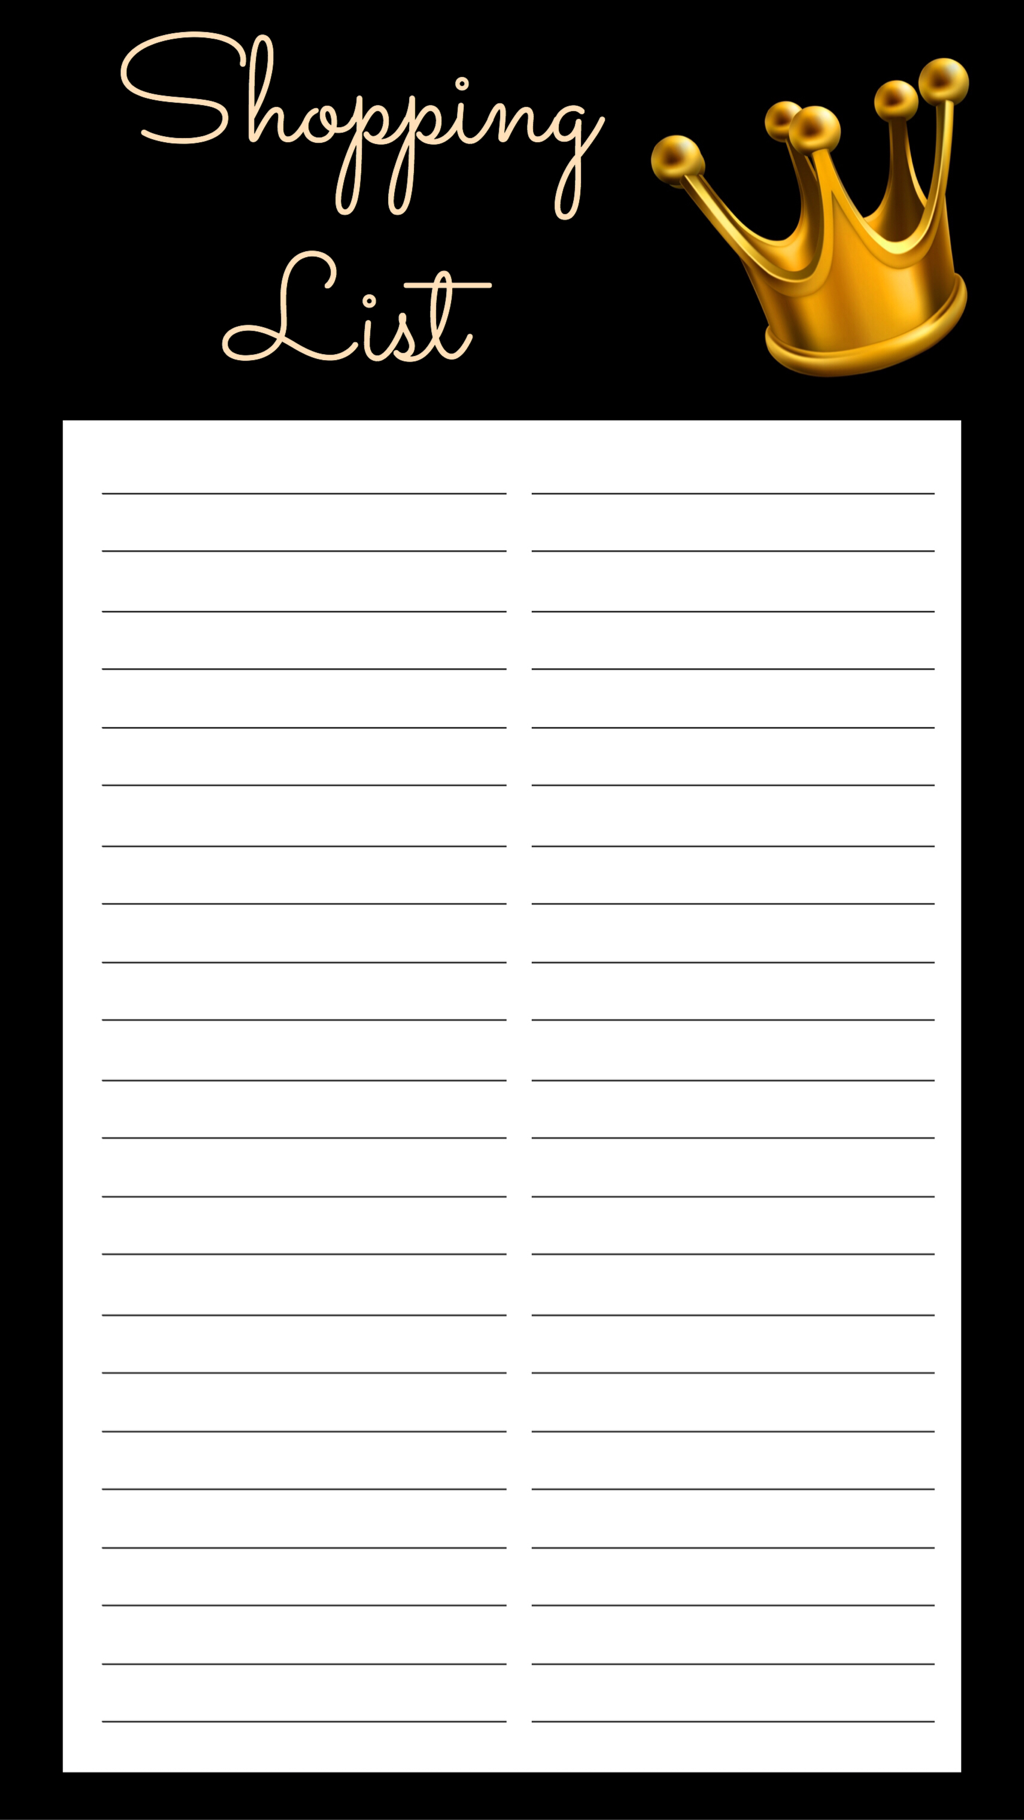 SHOPPING LIST FREE PRINTABLE